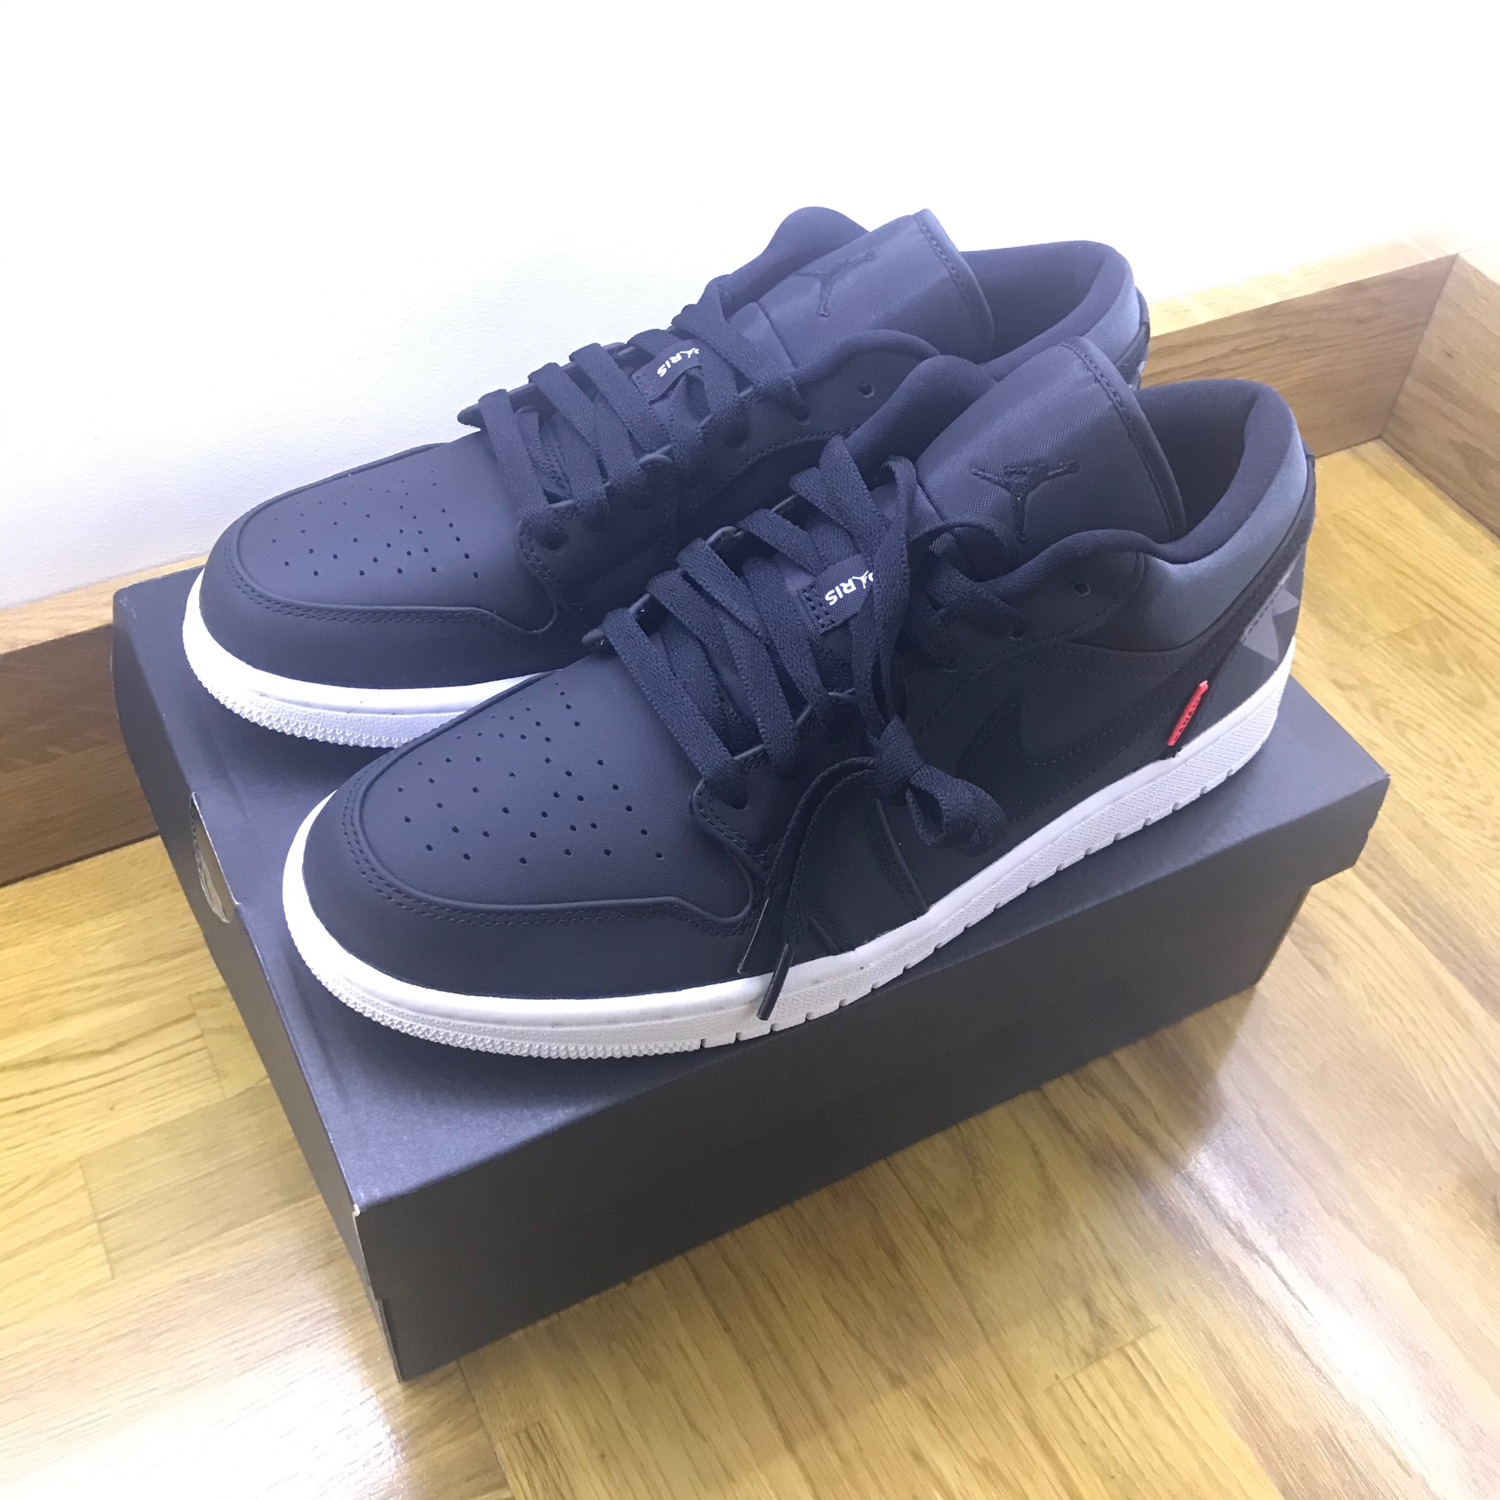 Jordan 1 Low Psg Paris Saint Germain